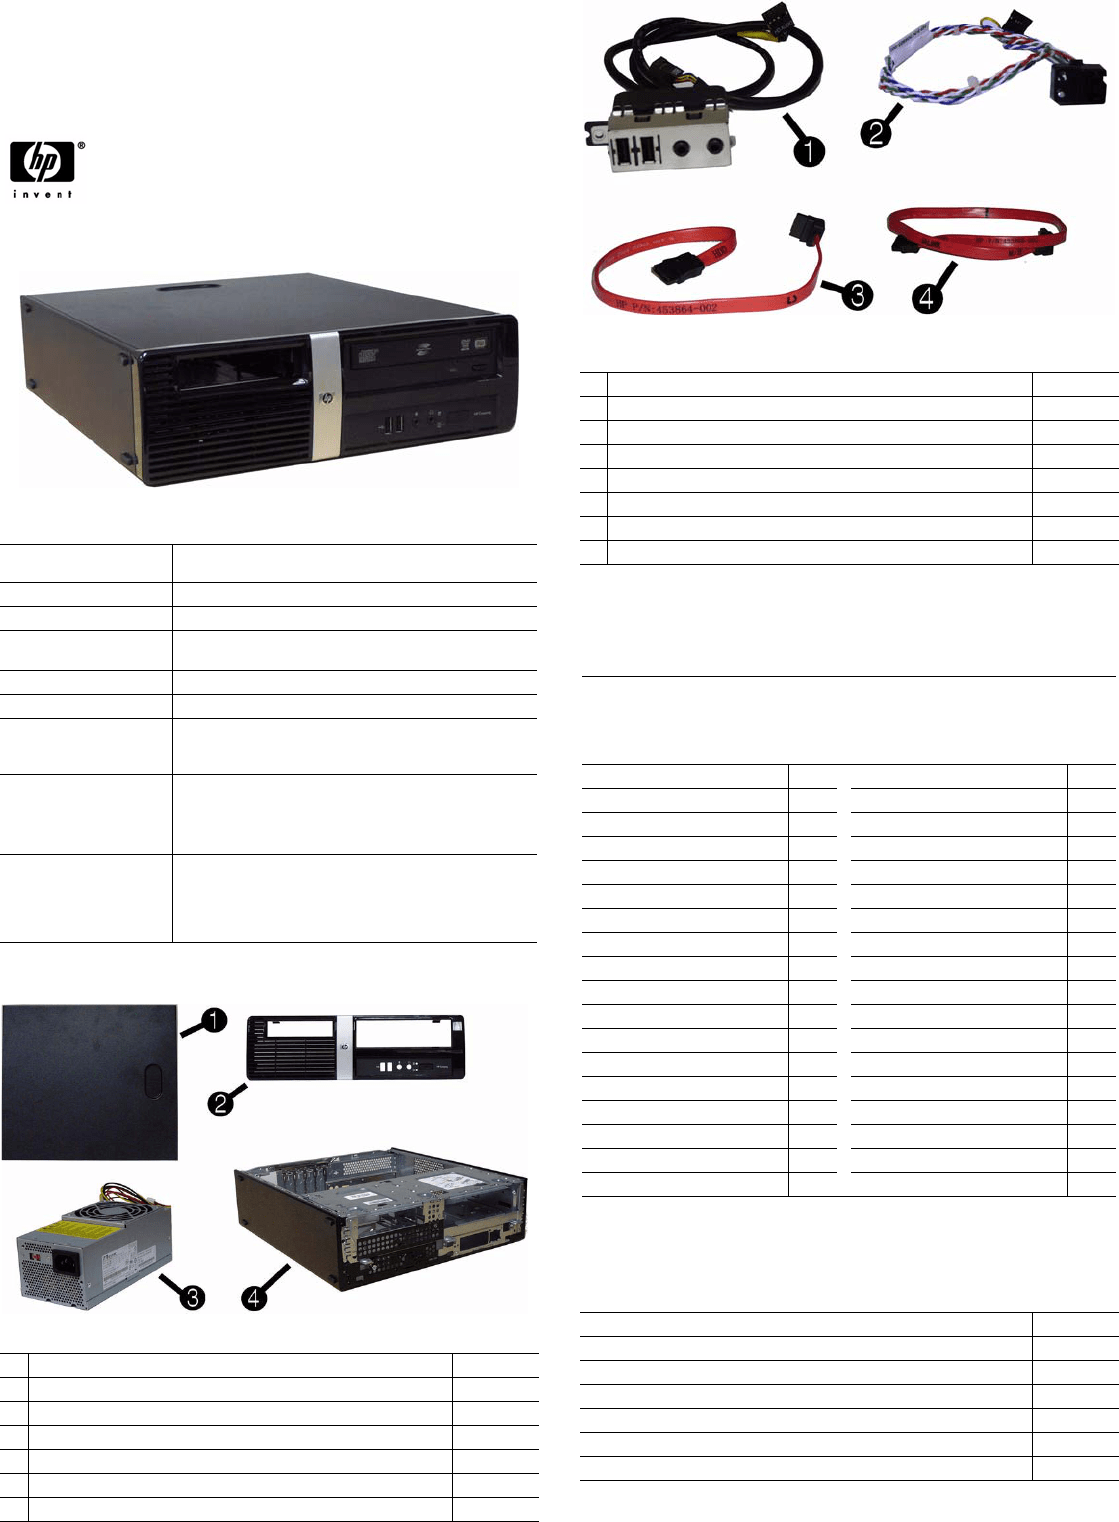 hight resolution of hp pro 3010 illustrated parts servi ce map sff chassis 597661 001 illustrated parts service map